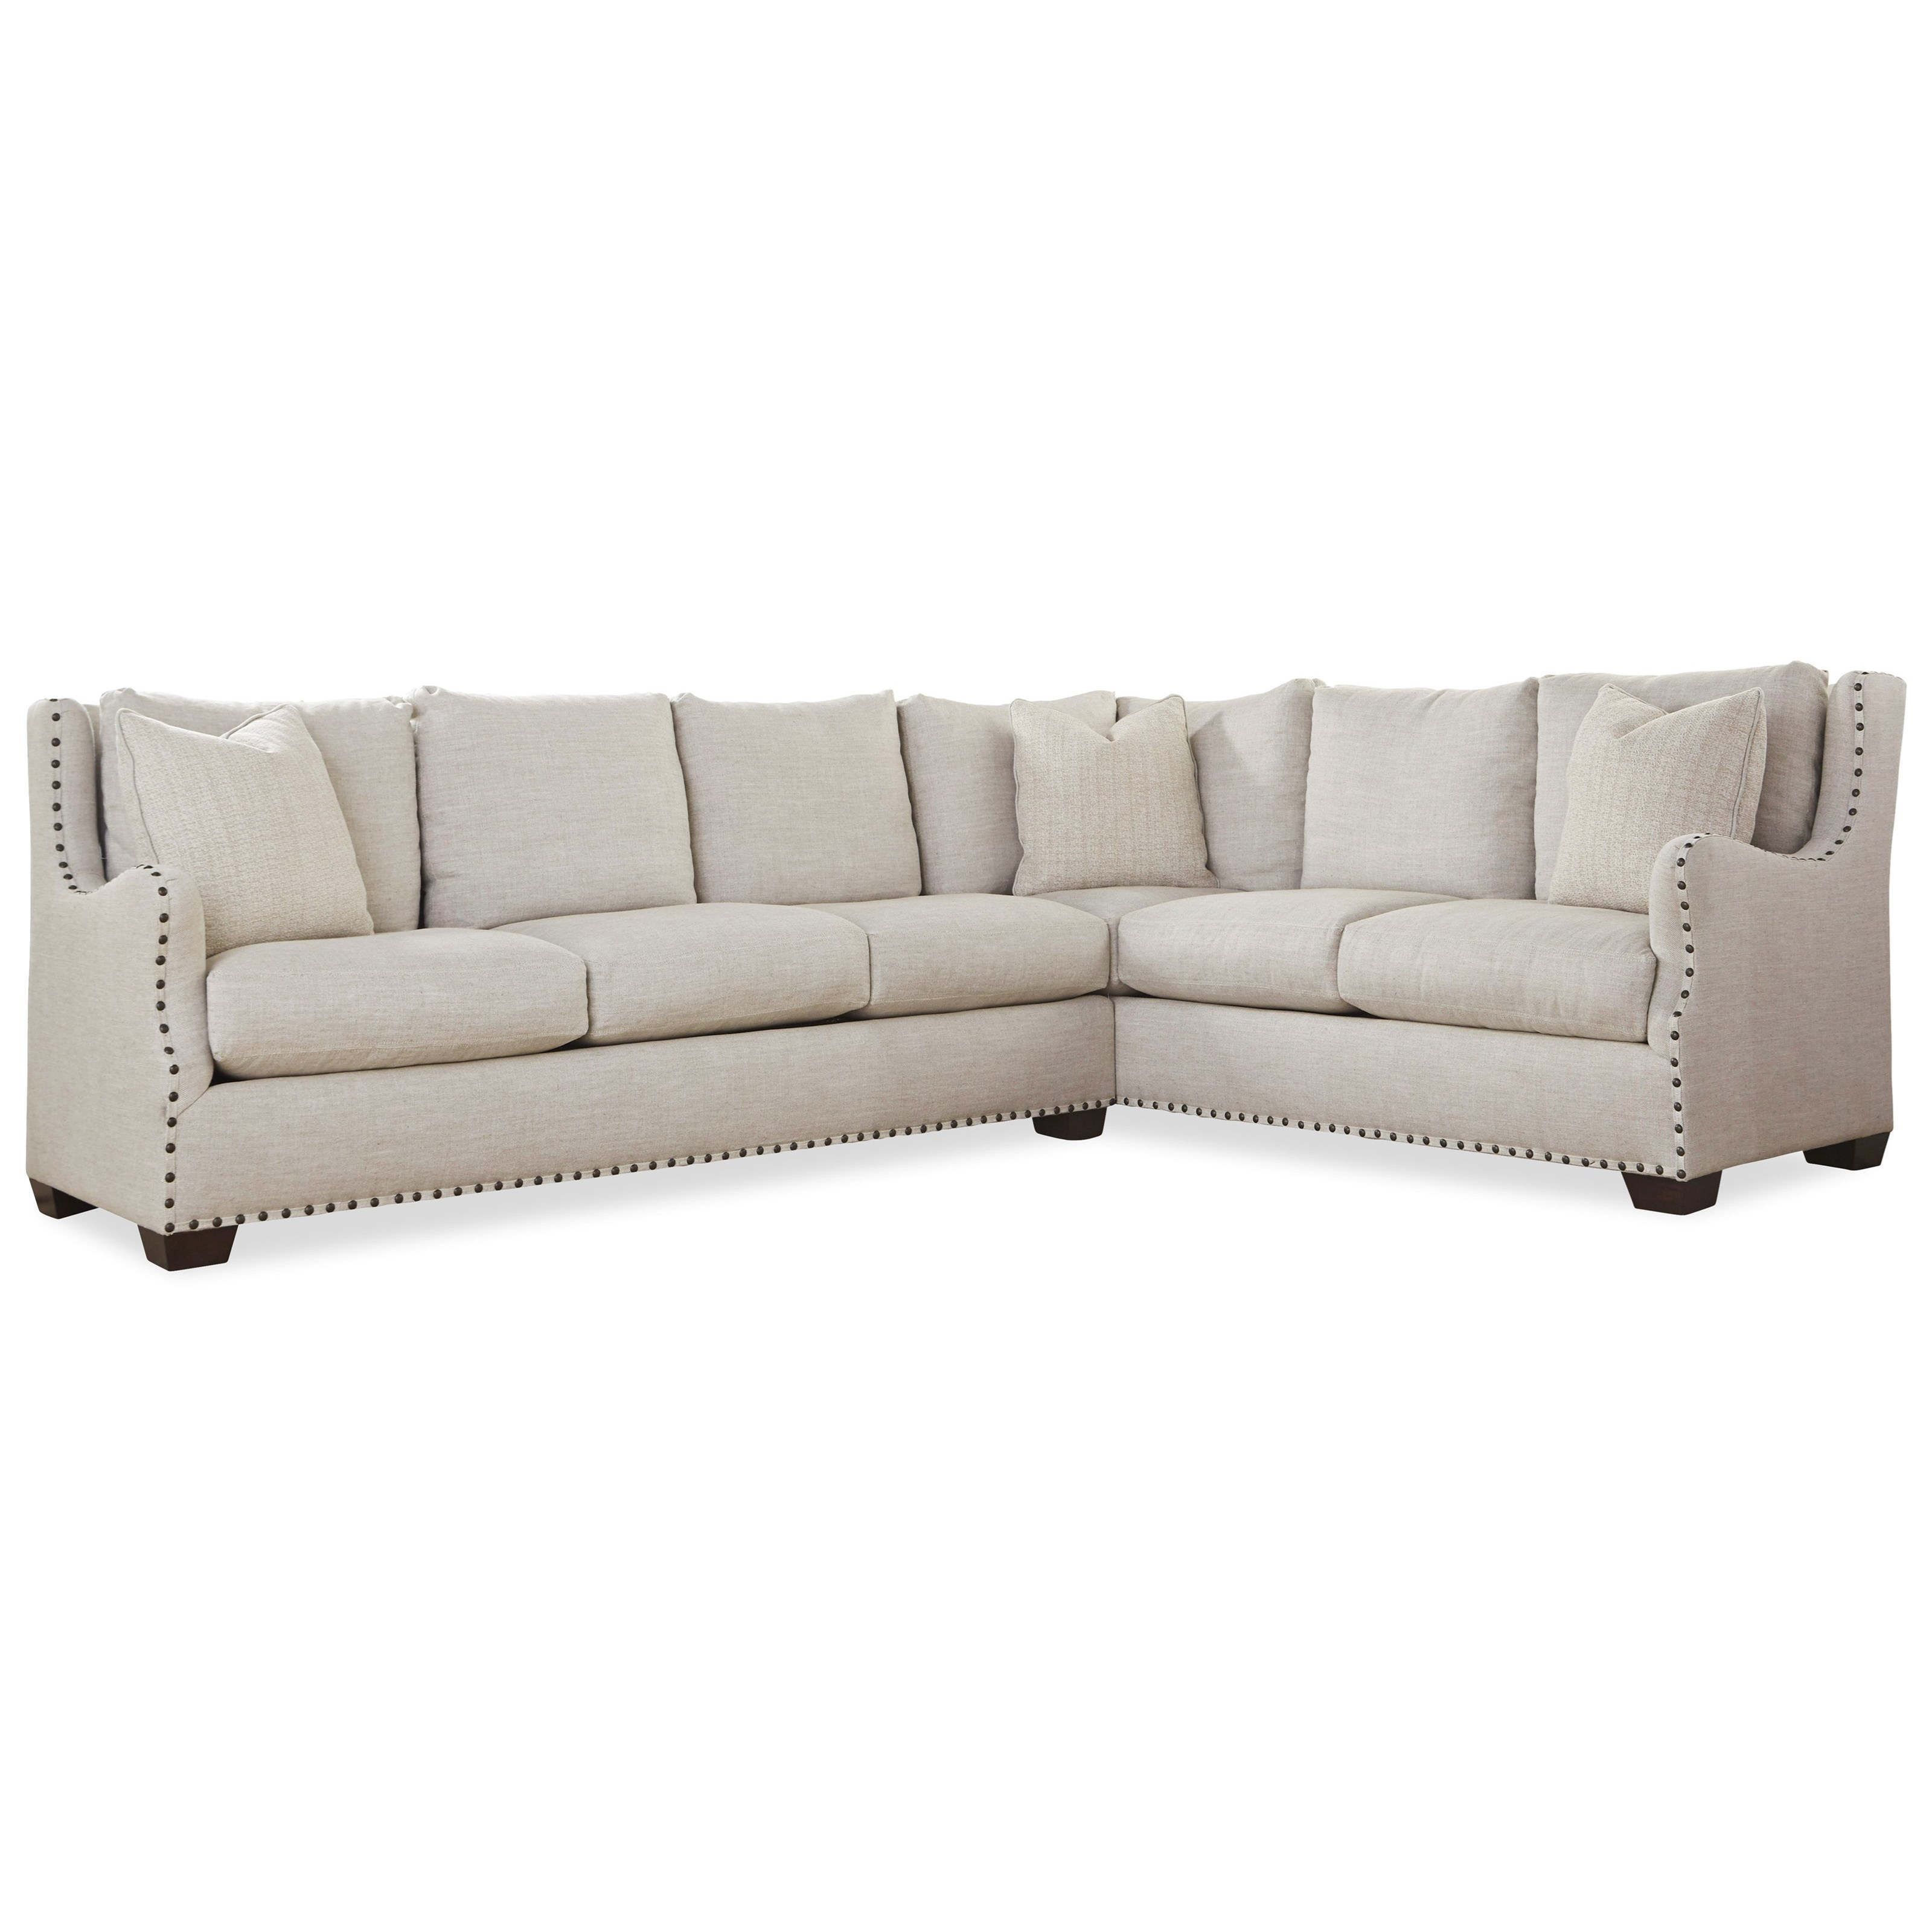 Universal Connor Traditional Sectional Sofa with Nail Head Trim - Hudsonu0027s Furniture - Sectional Sofas  sc 1 st  Hudsonu0027s Furniture : sectional sofa with nailhead trim - Sectionals, Sofas & Couches